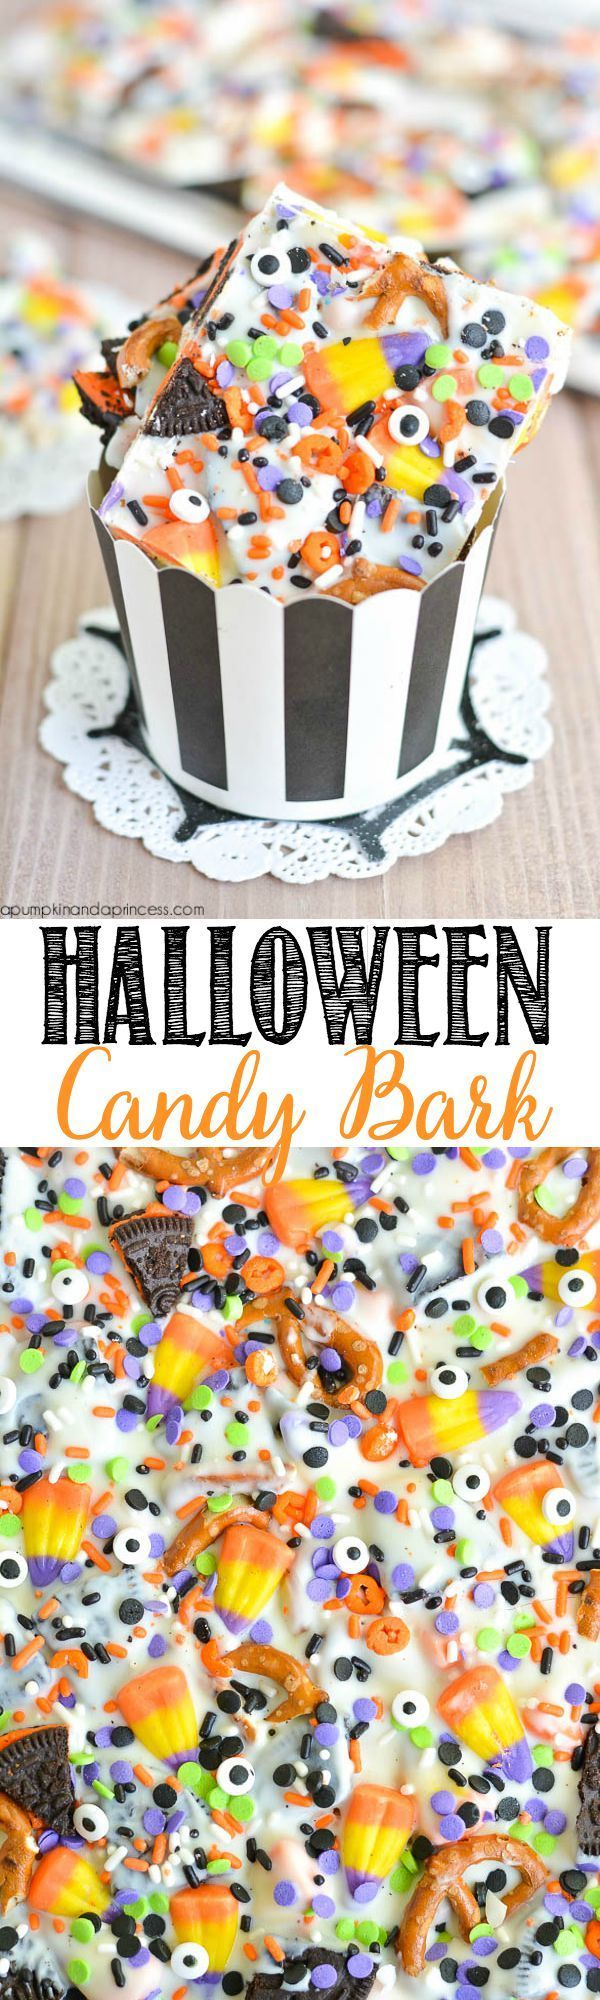 Use your leftover Halloween candy to treat the whole family with candy bark!